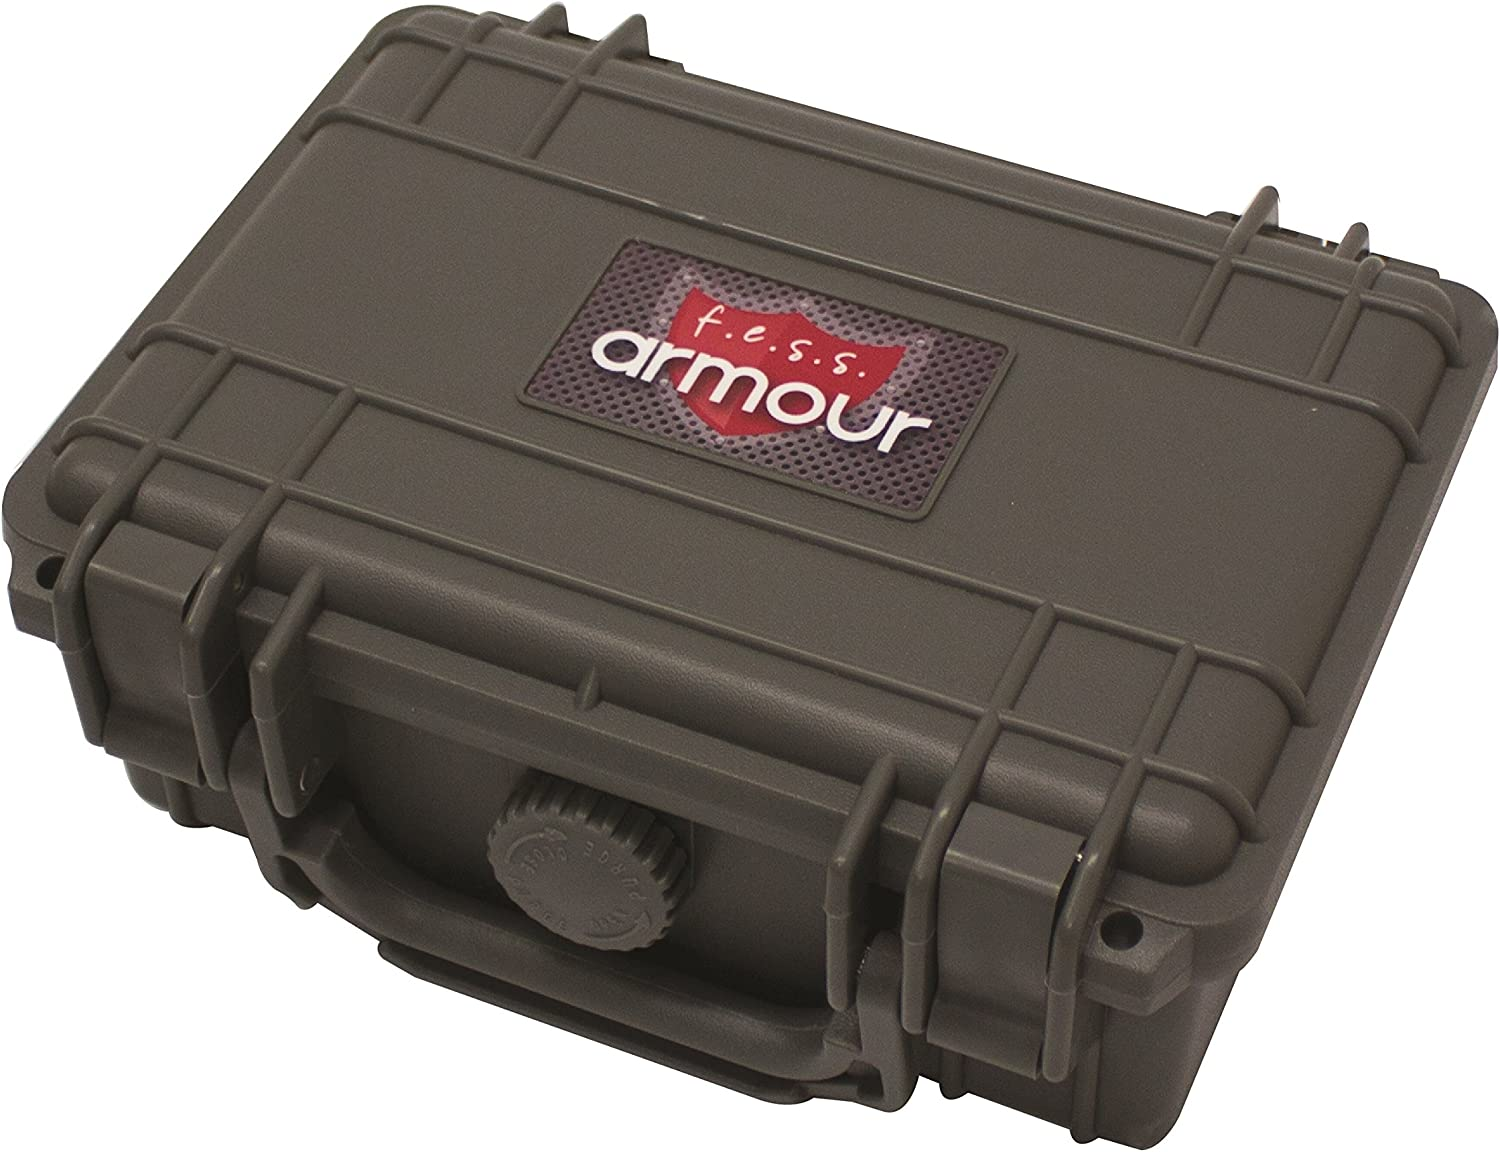 F.e.s.s. Armour Waterproof Crushproof Max 55% OFF Air On Water Tight Floats Excellence